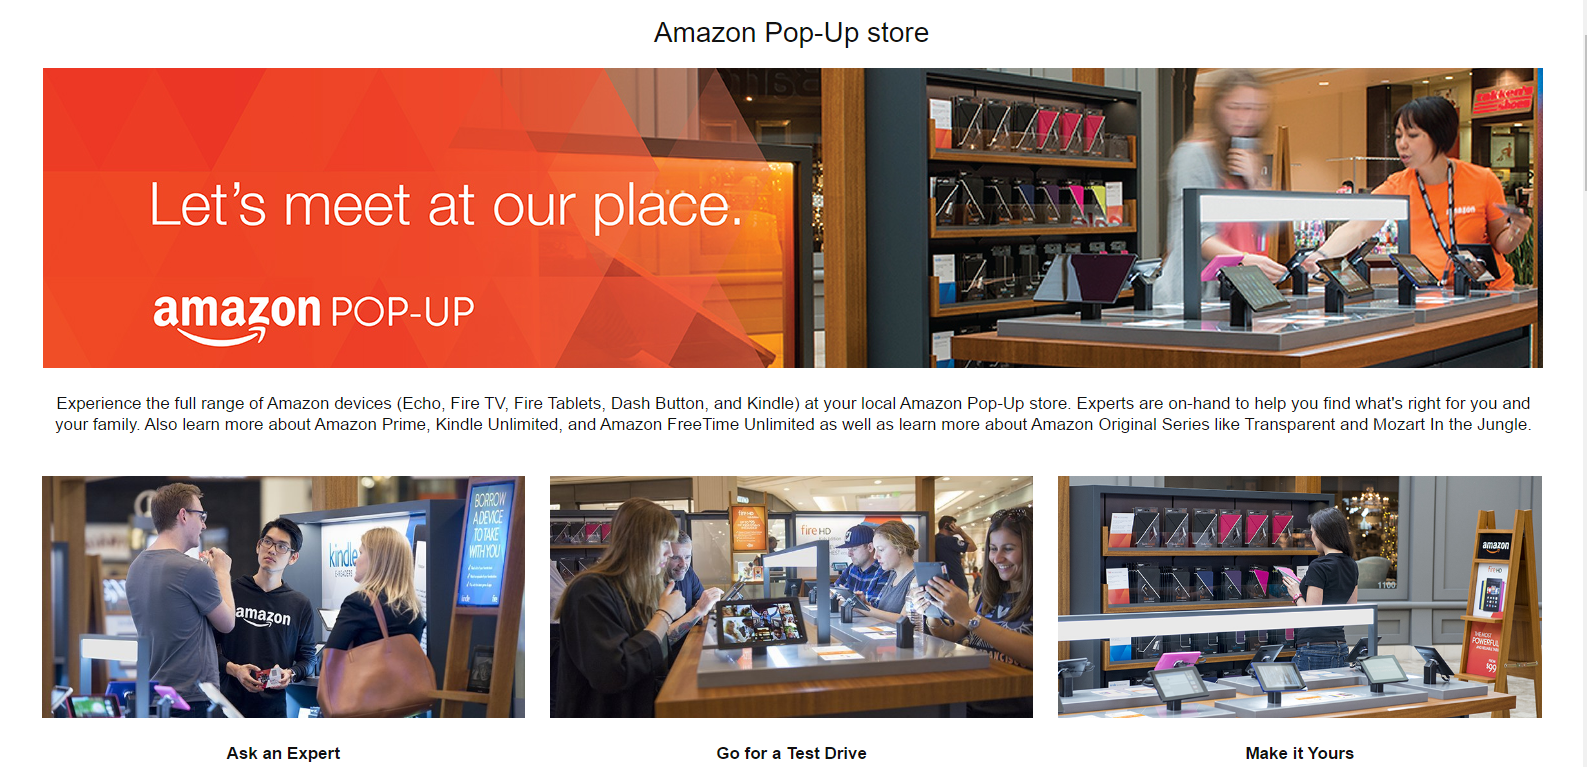 Amazon Pop-Up Stores: More Expected in 2017